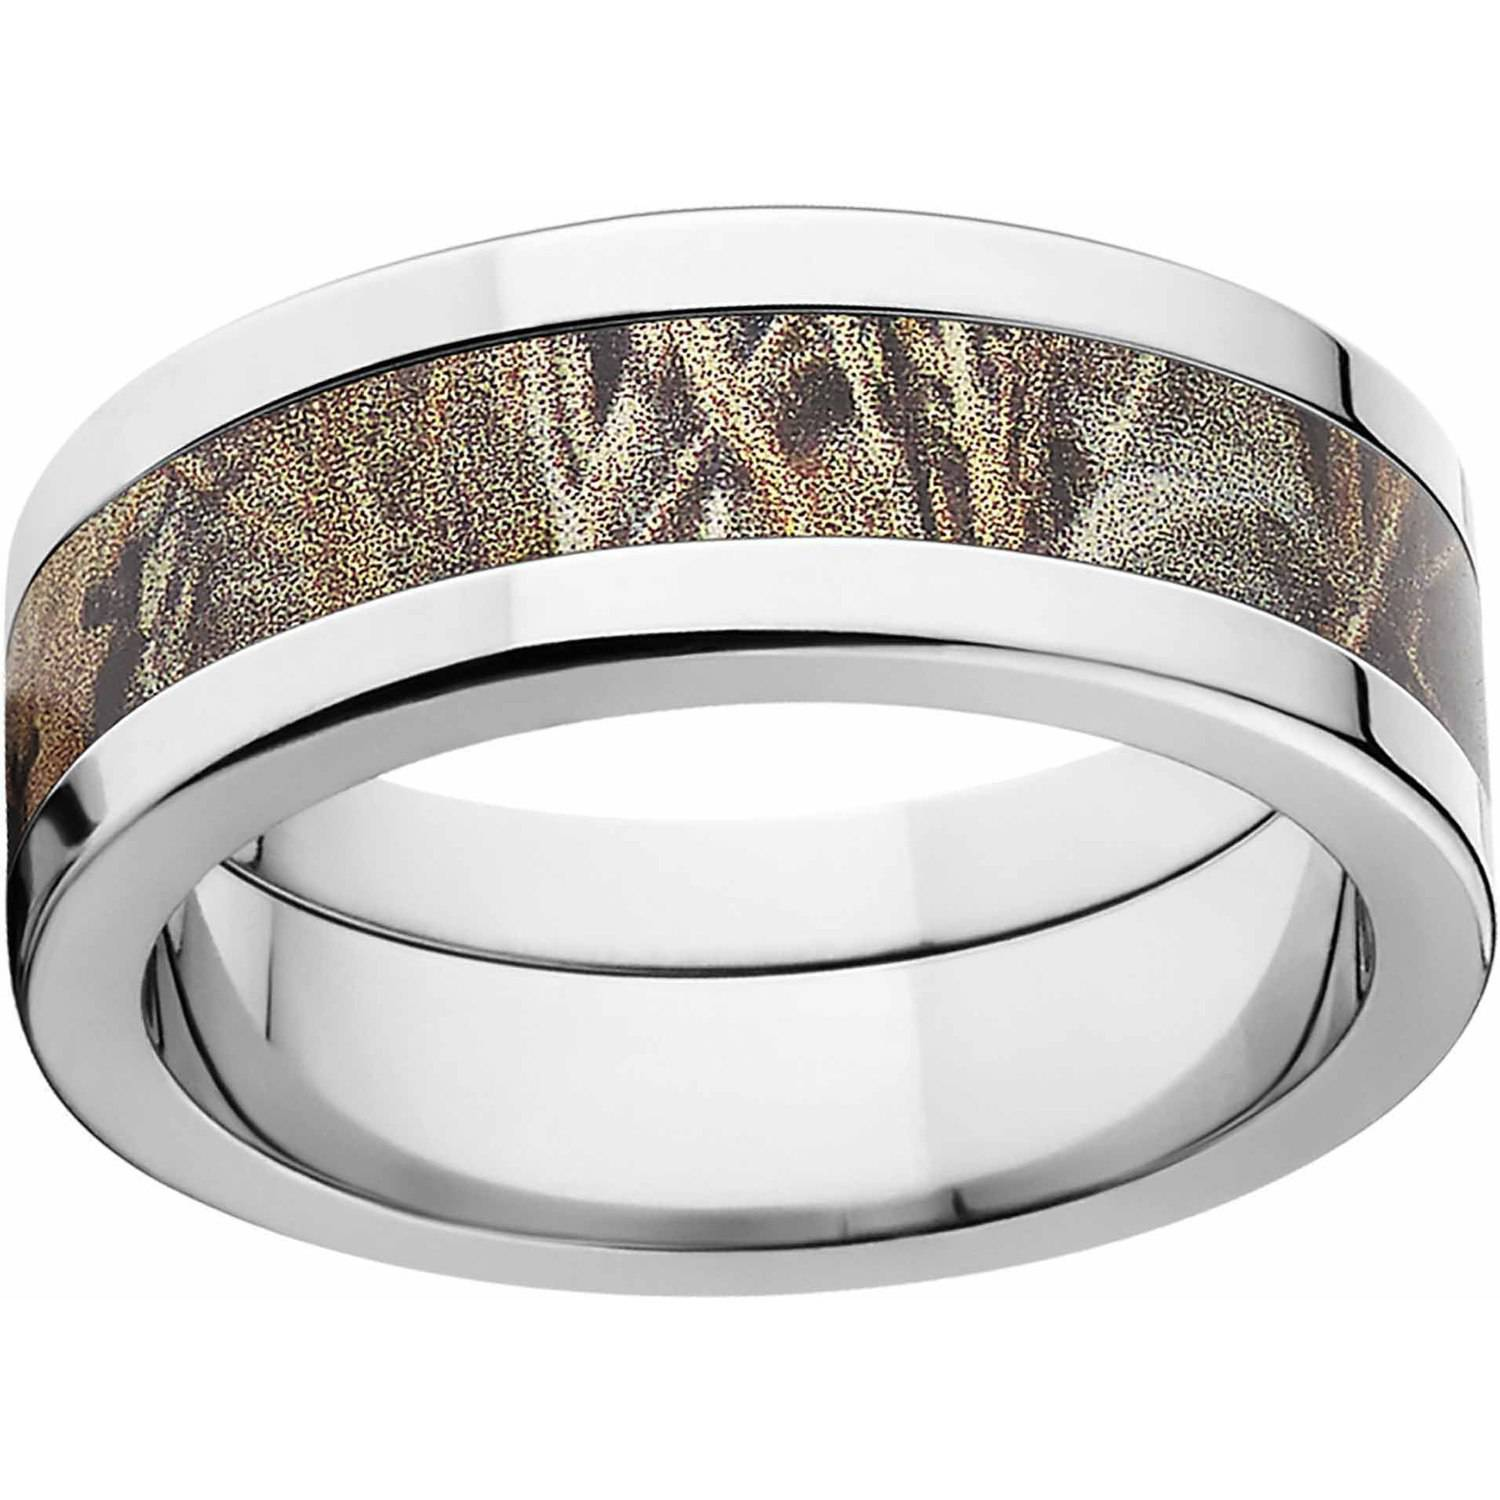 Realtree Max 4 Men's Camo 8mm Stainless Steel Wedding Band with Polished Edges and Deluxe Comfort Fit